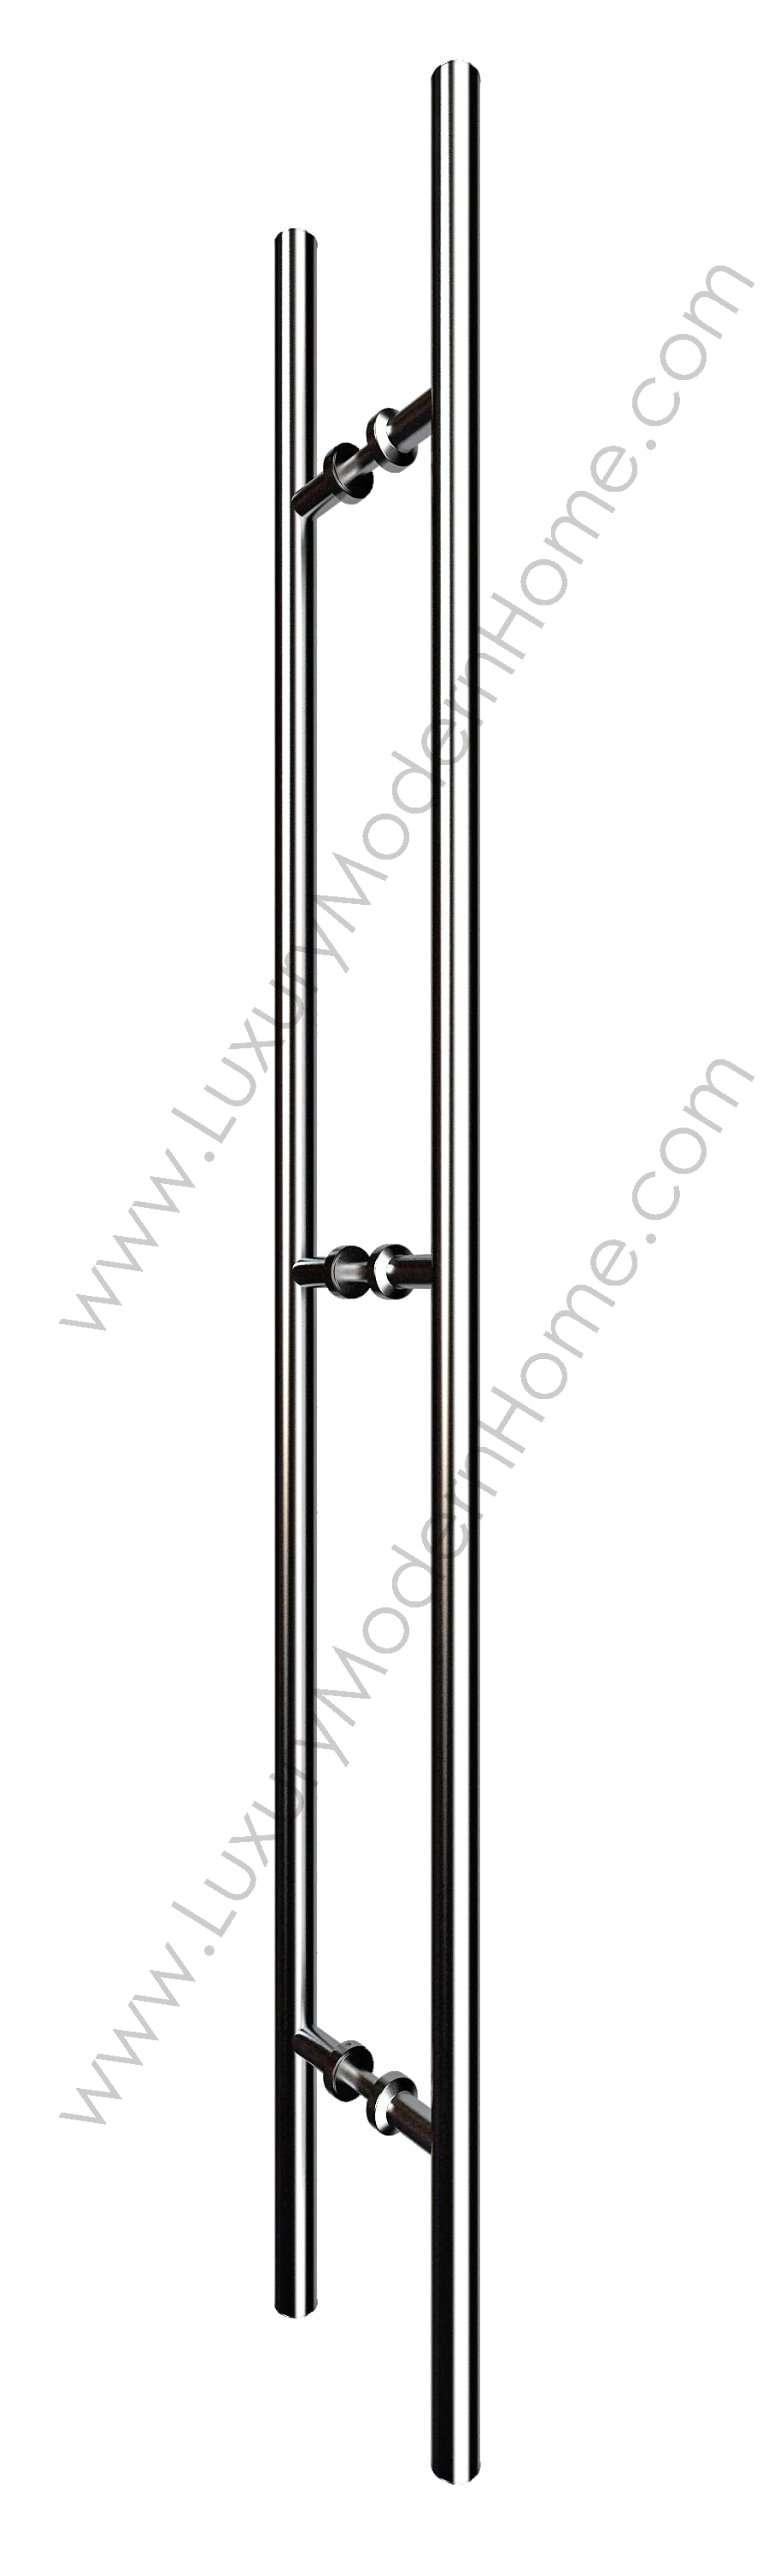 dh 48'' Ladder Style Pull Shower Handle - Wood Glass Door Stainless Steel 304 Modern Contemporary